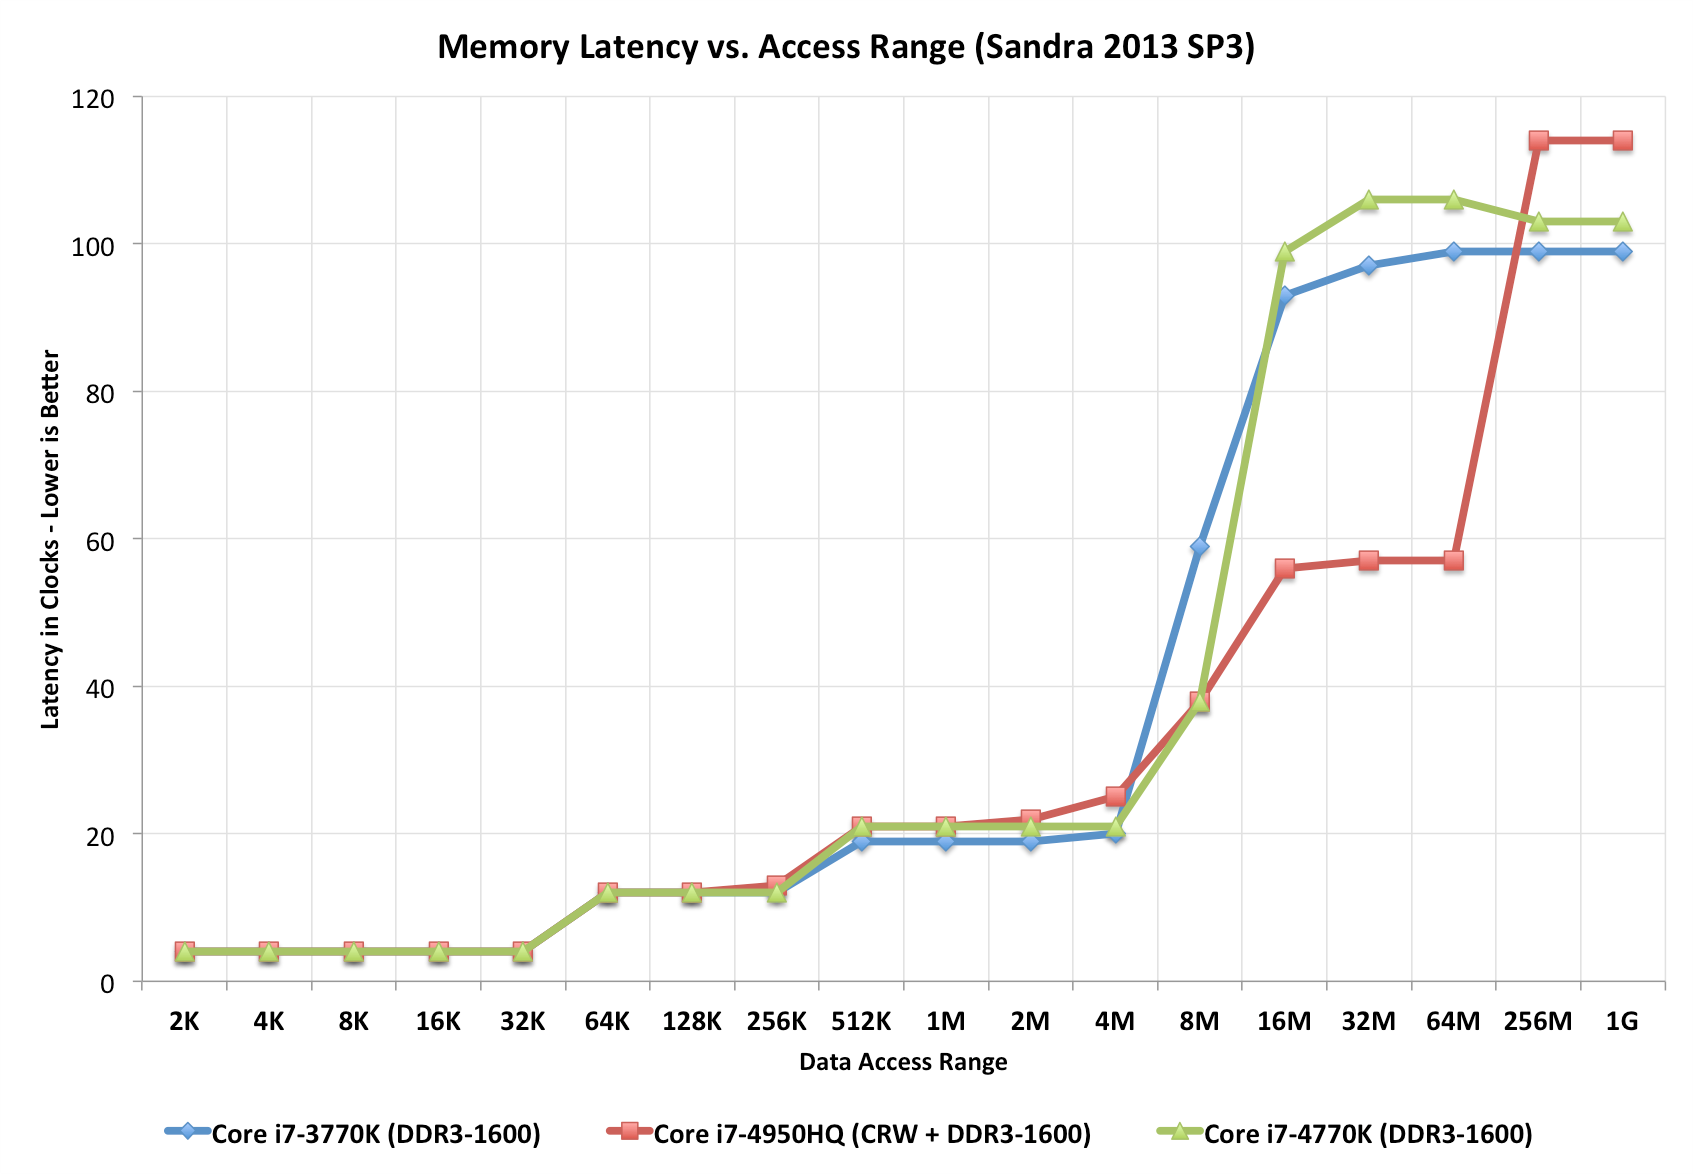 Memory latency vs. Access range